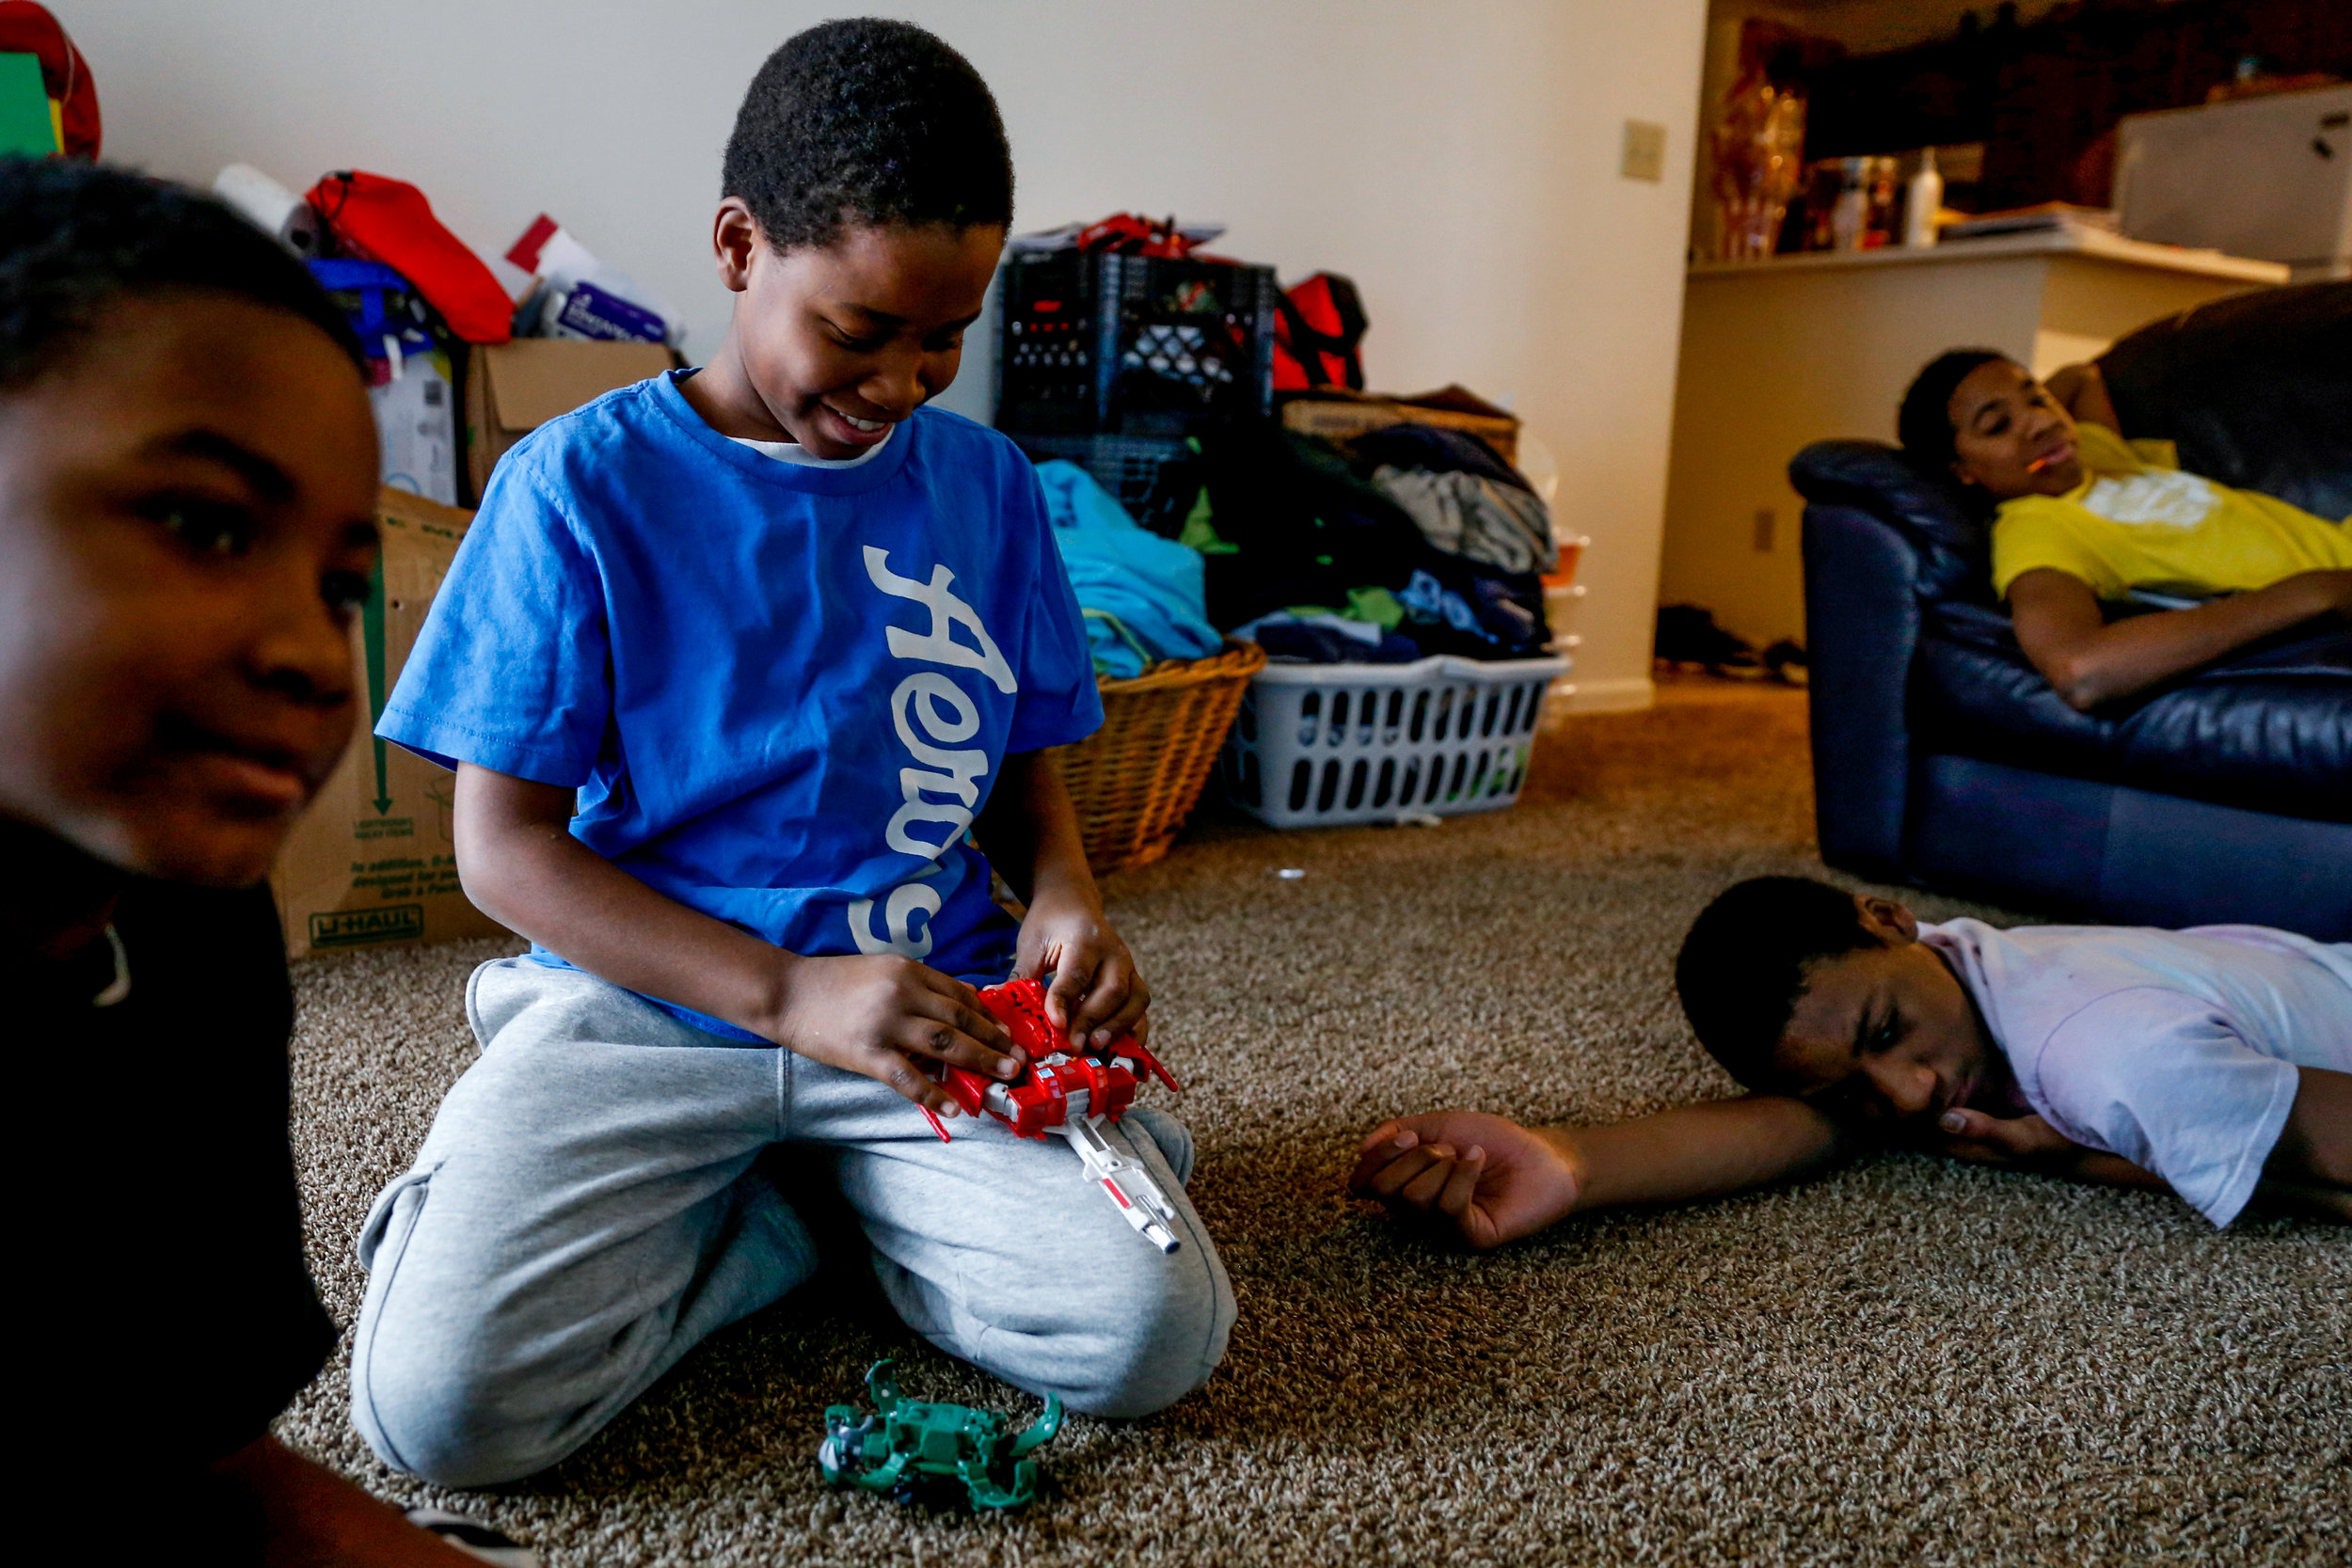 From left, Ray, 9, Jy'Aire, 13, Jordan, 7, and Jamairan, 11, watch television at their home on Friday, Dec. 30, 2016. Their mother, Aeisha Vann, 33, was reunited with her children after completing Baby Court in six months.